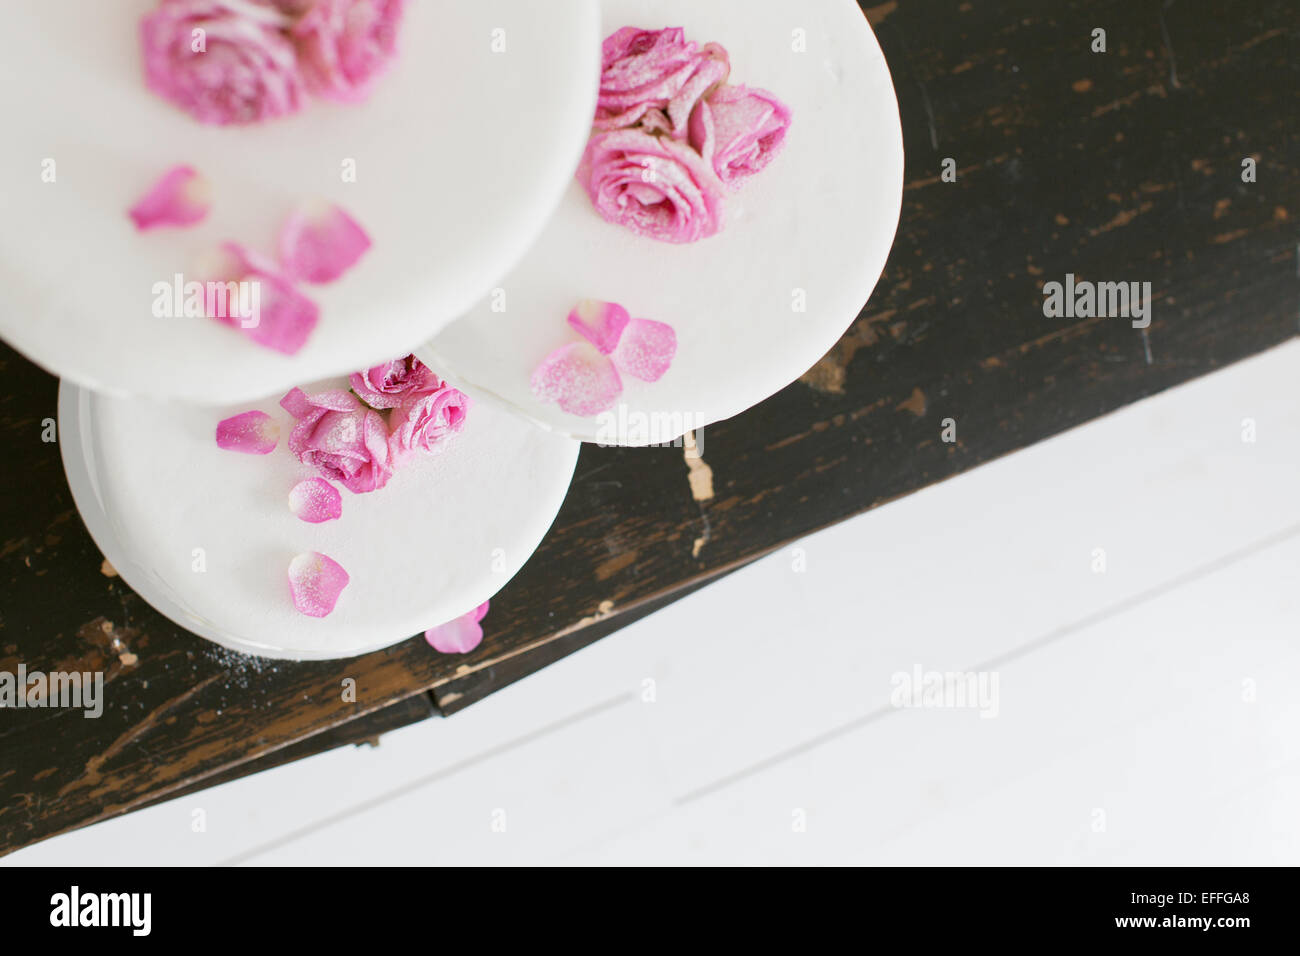 High angle view of delicious cake with rose decorations - Stock Image